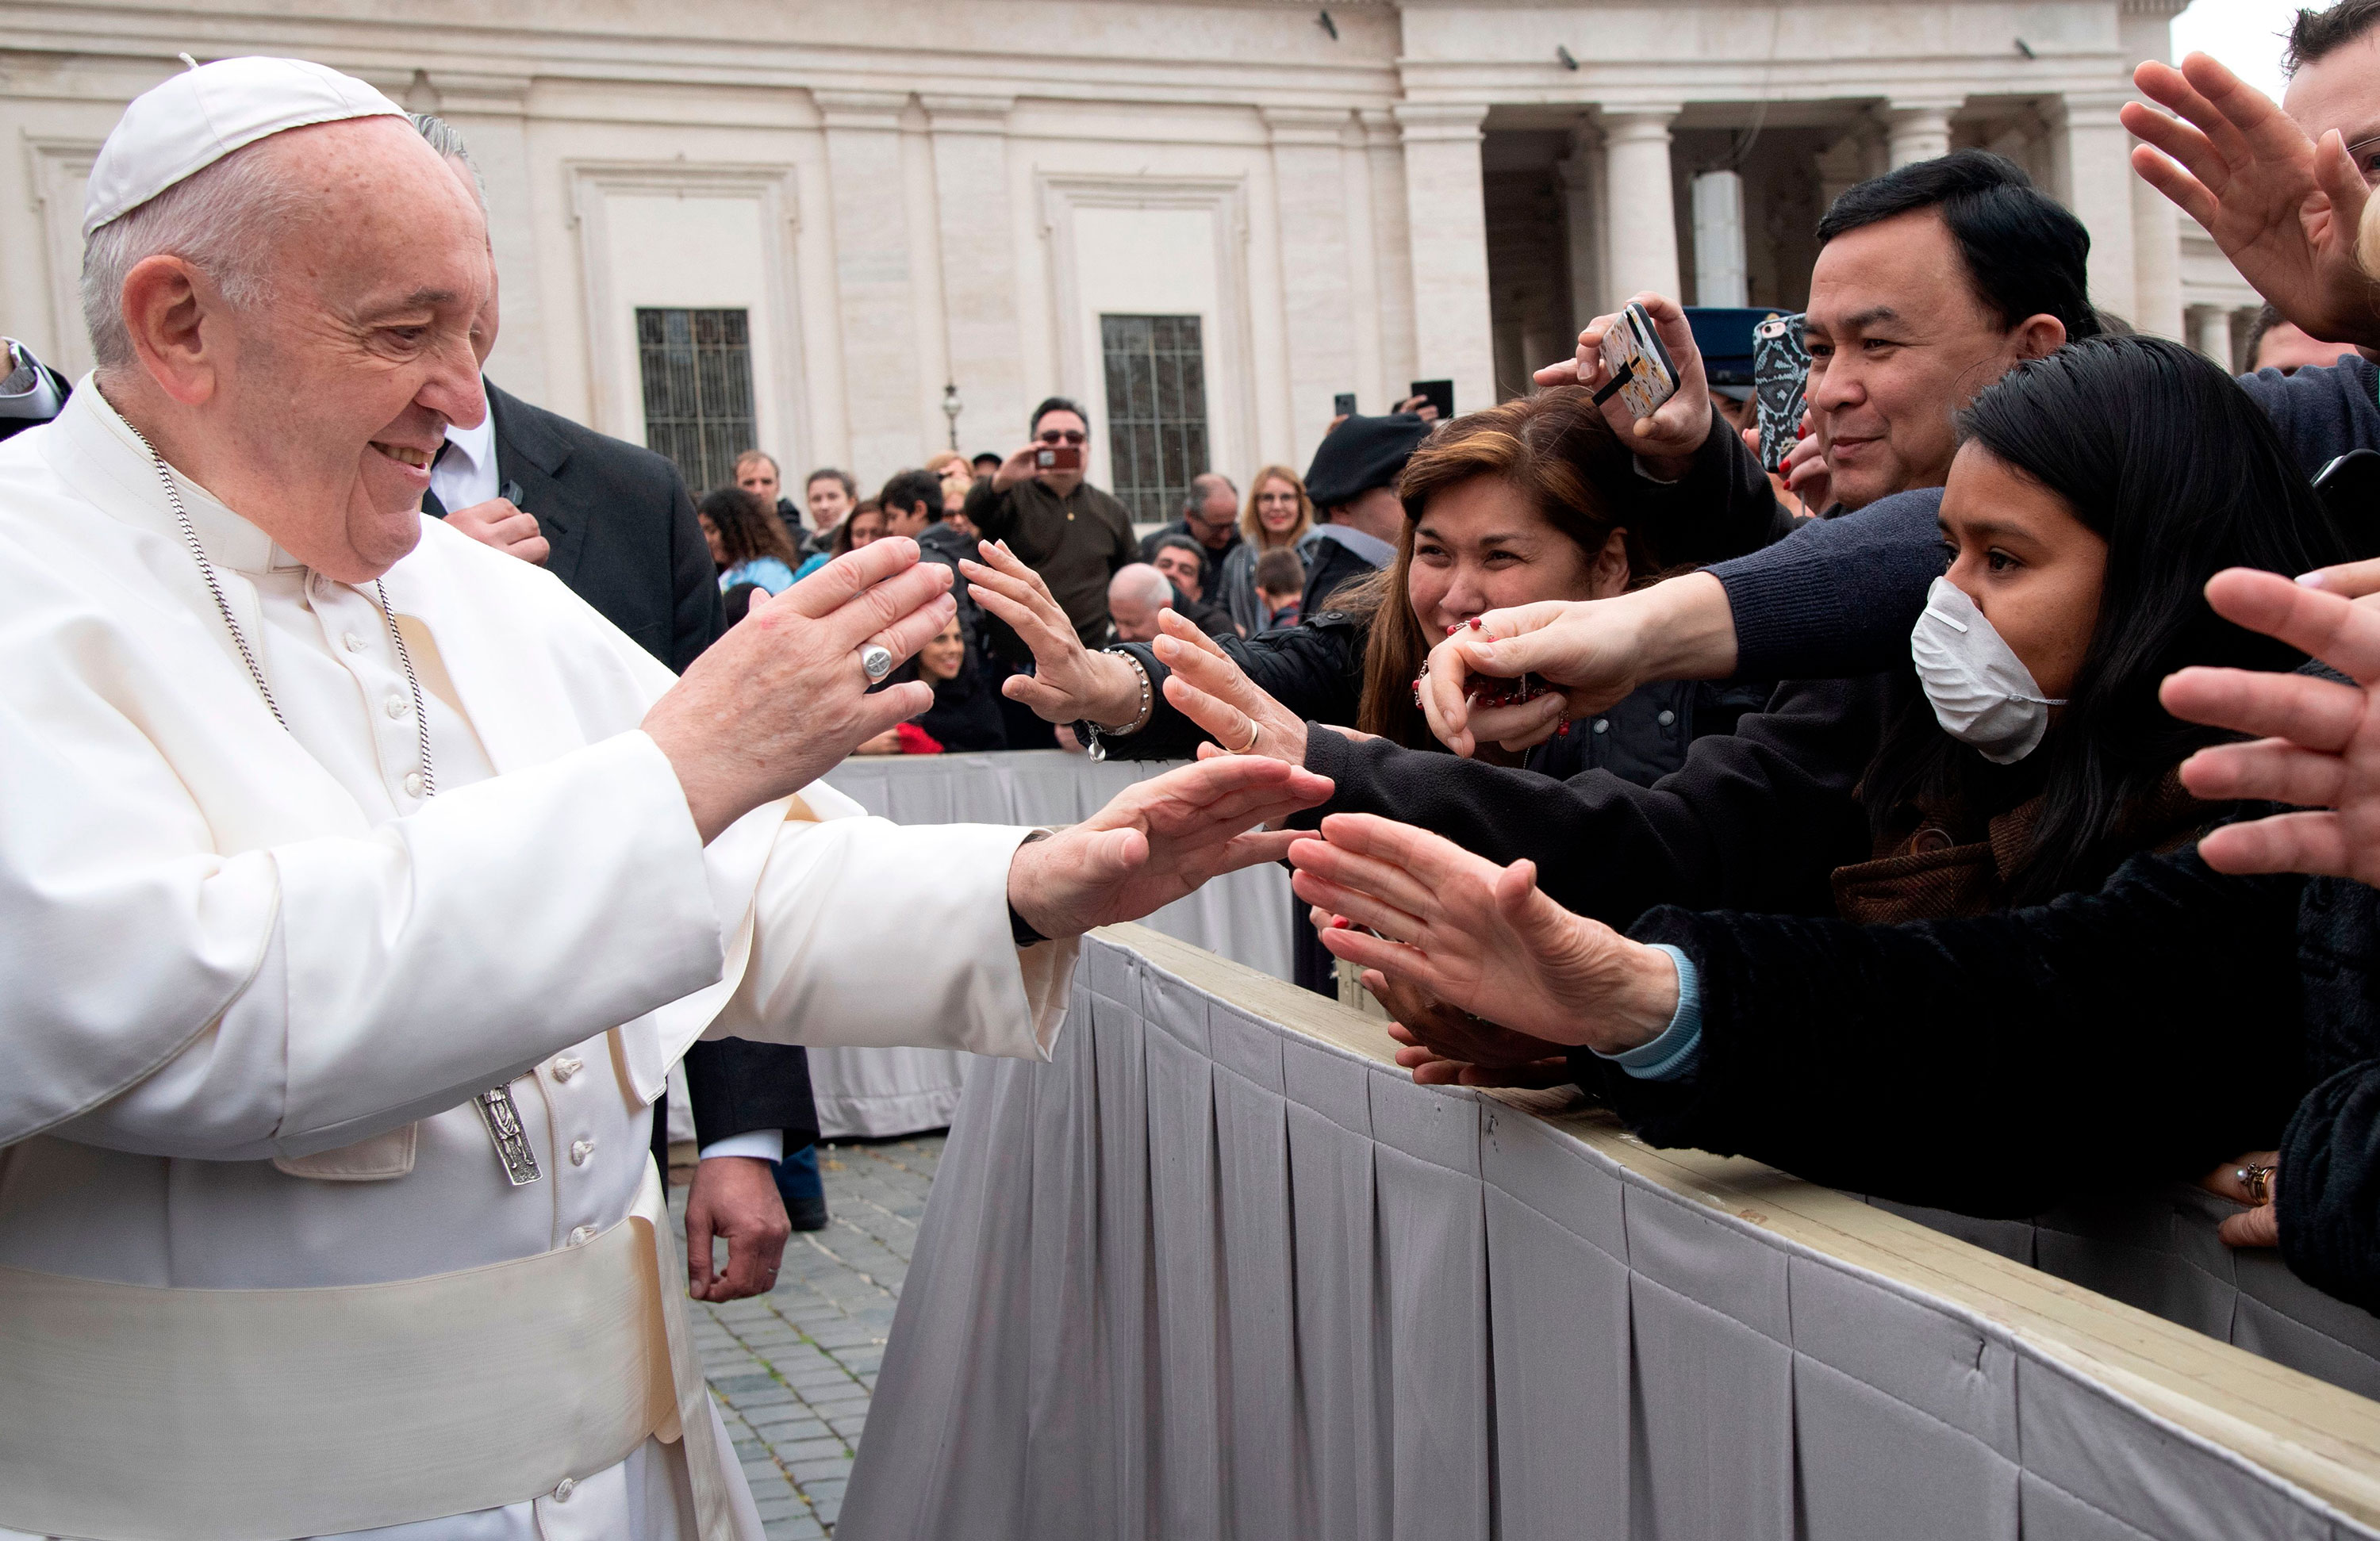 Pope Francis greets people at St. Peter's Square in the Vatican at the end of his weekly general audience on Wednesday, February 26.